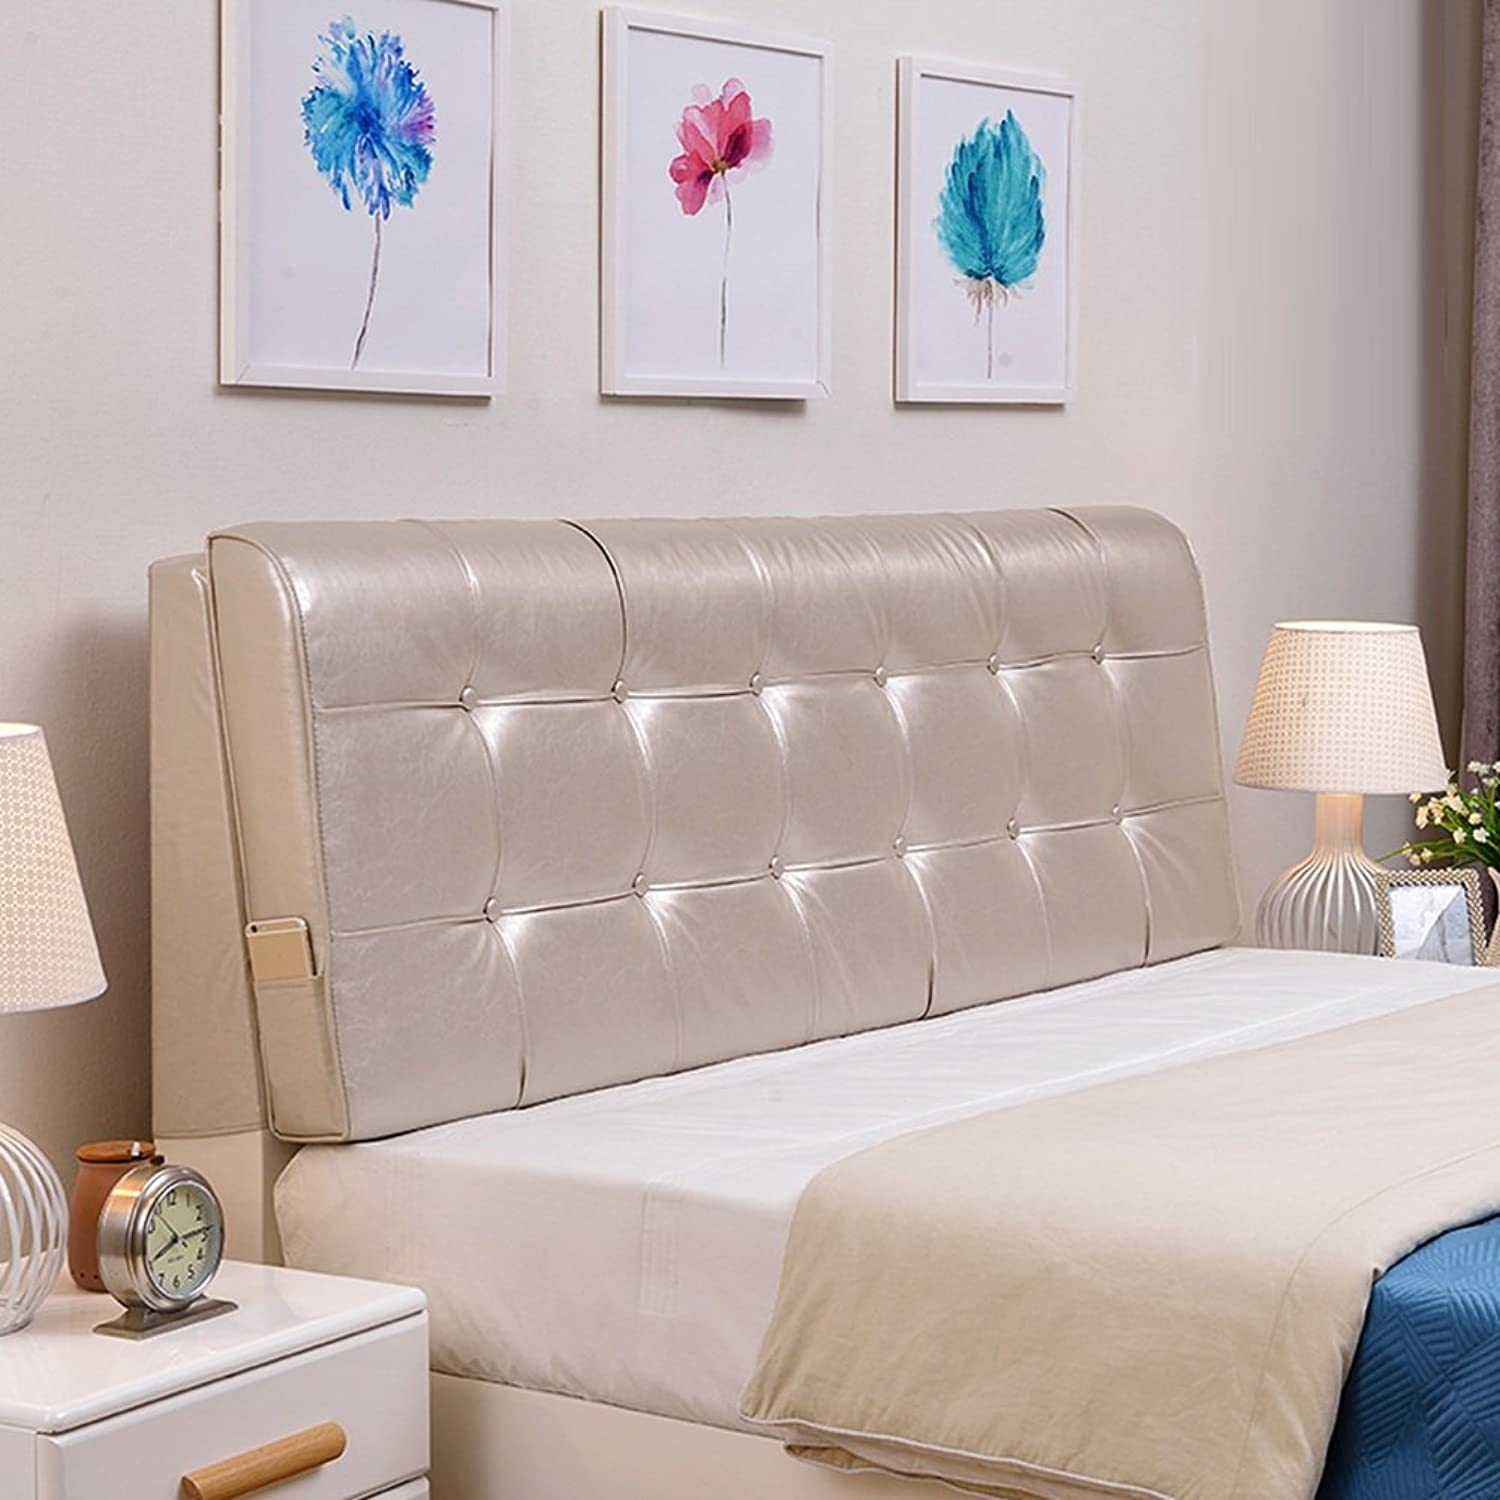 WENZHE Upholstered Fabric Headboard Bedside Cushion Pads Cover Bed Wedges Backrest Waist Pad Large Back Double Multifunction Easy To Clean, There Are Headboards, 6 colors, 8 Sizes ( color   3  , Size   With headboard-120cm )